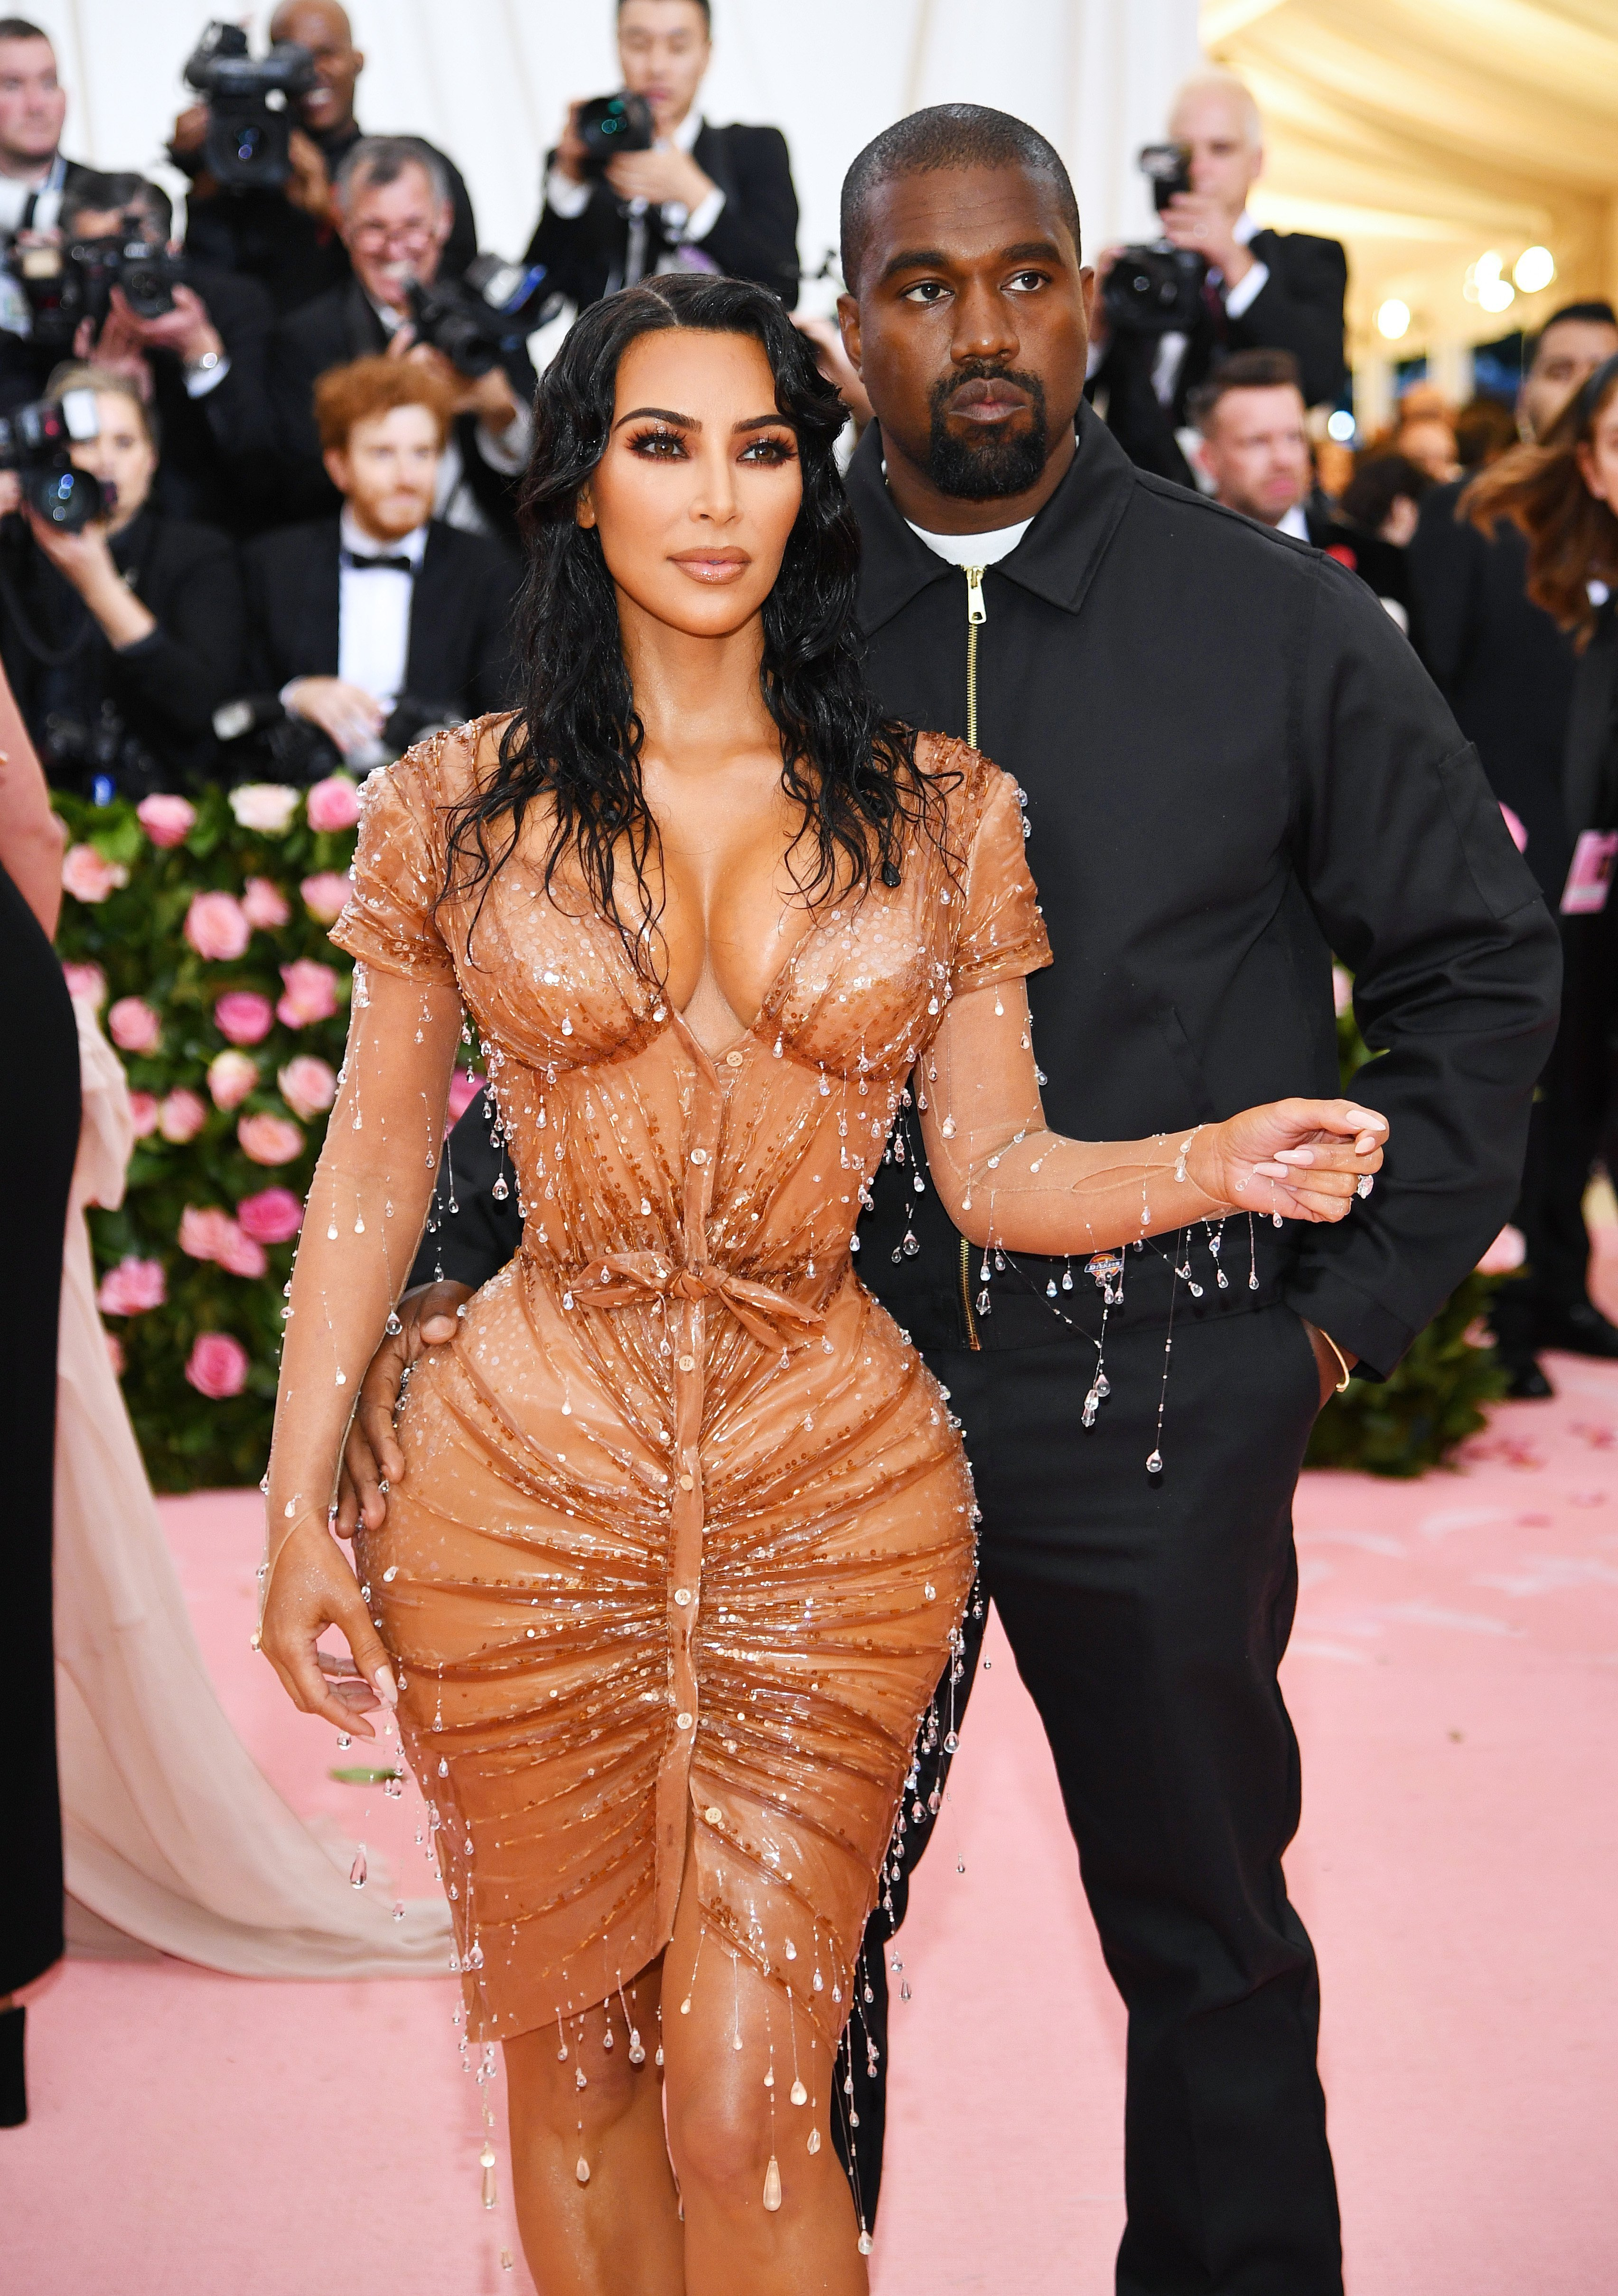 Kim Kardashian & Kanye West at the Met Gala on May 06, 2019 in New York City | Photo: Getty Images